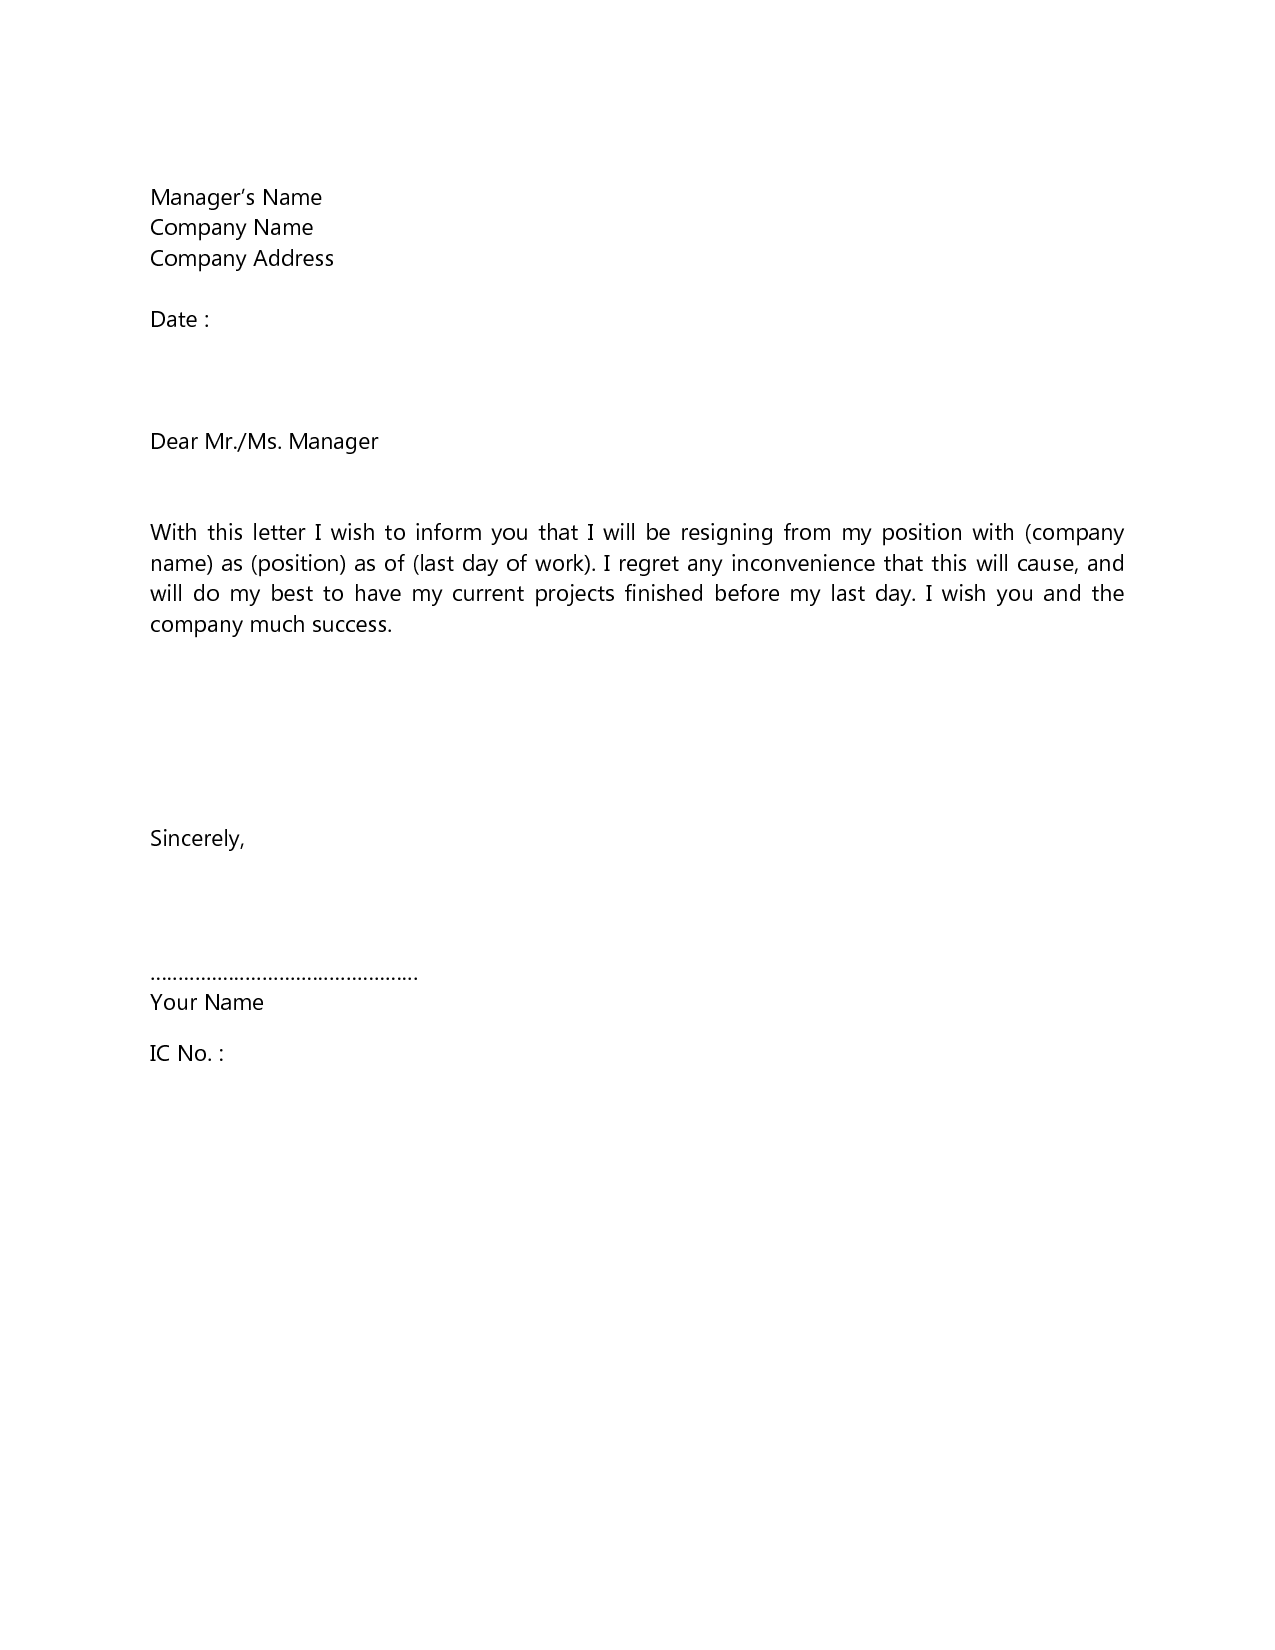 Letters Of Resignation 2 Weeks Notice Google Search Business In